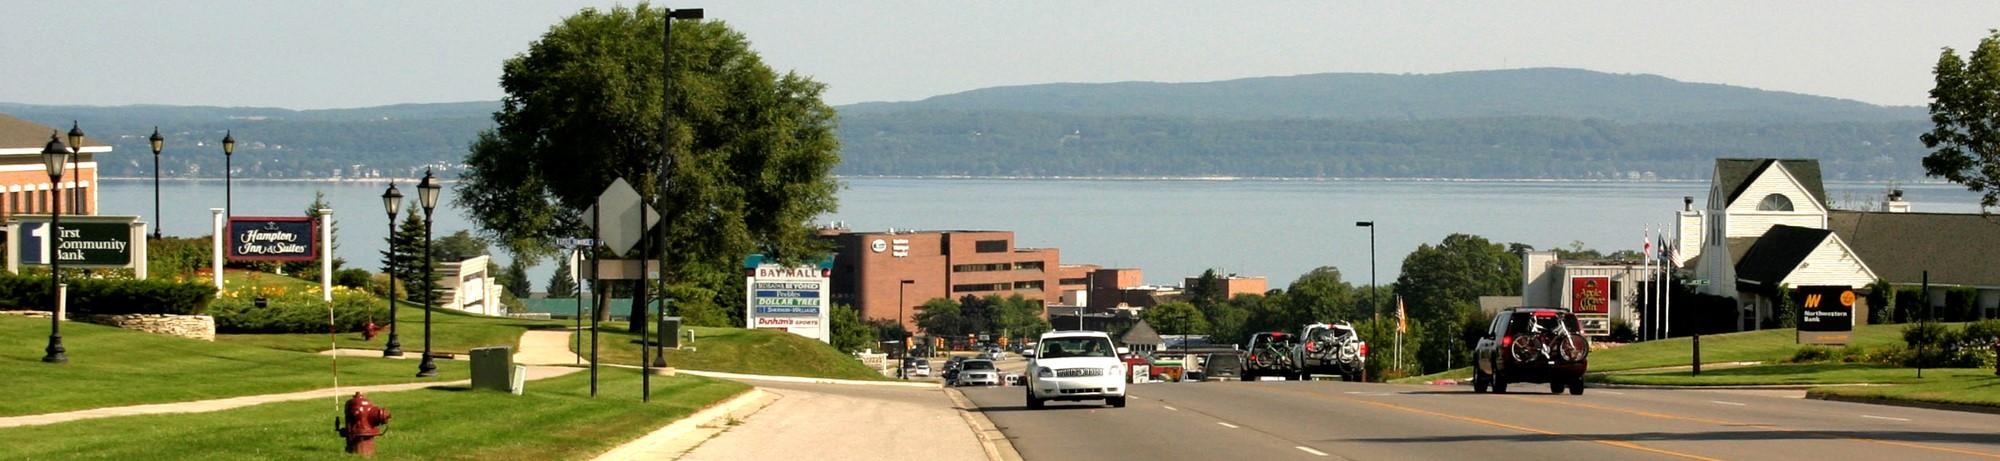 Image of highway overlooking Petoskey with monument signs on both sides.